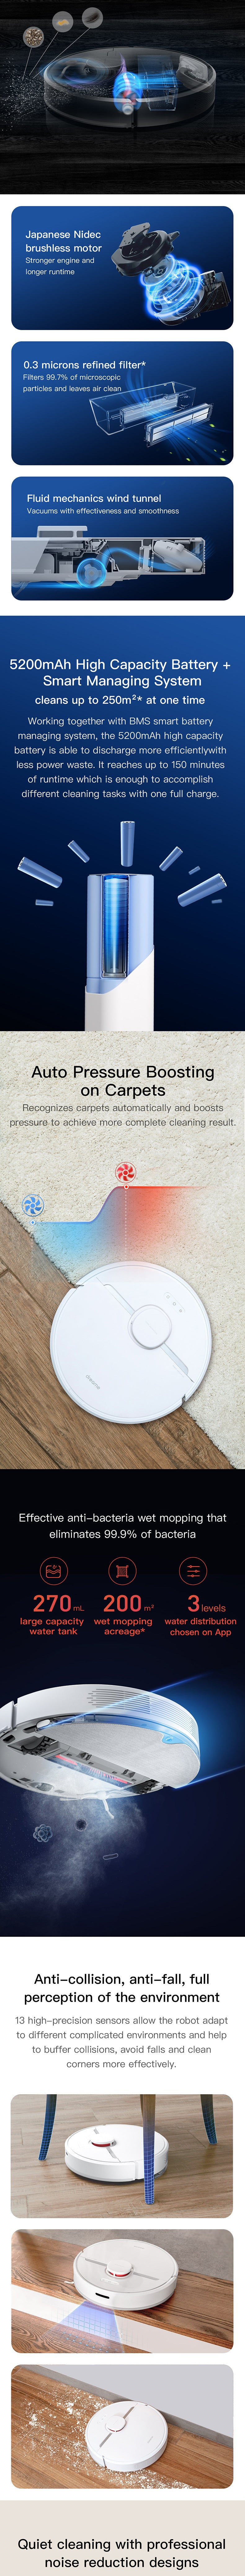 Dreame D9 Robot Vacuum Cleaner